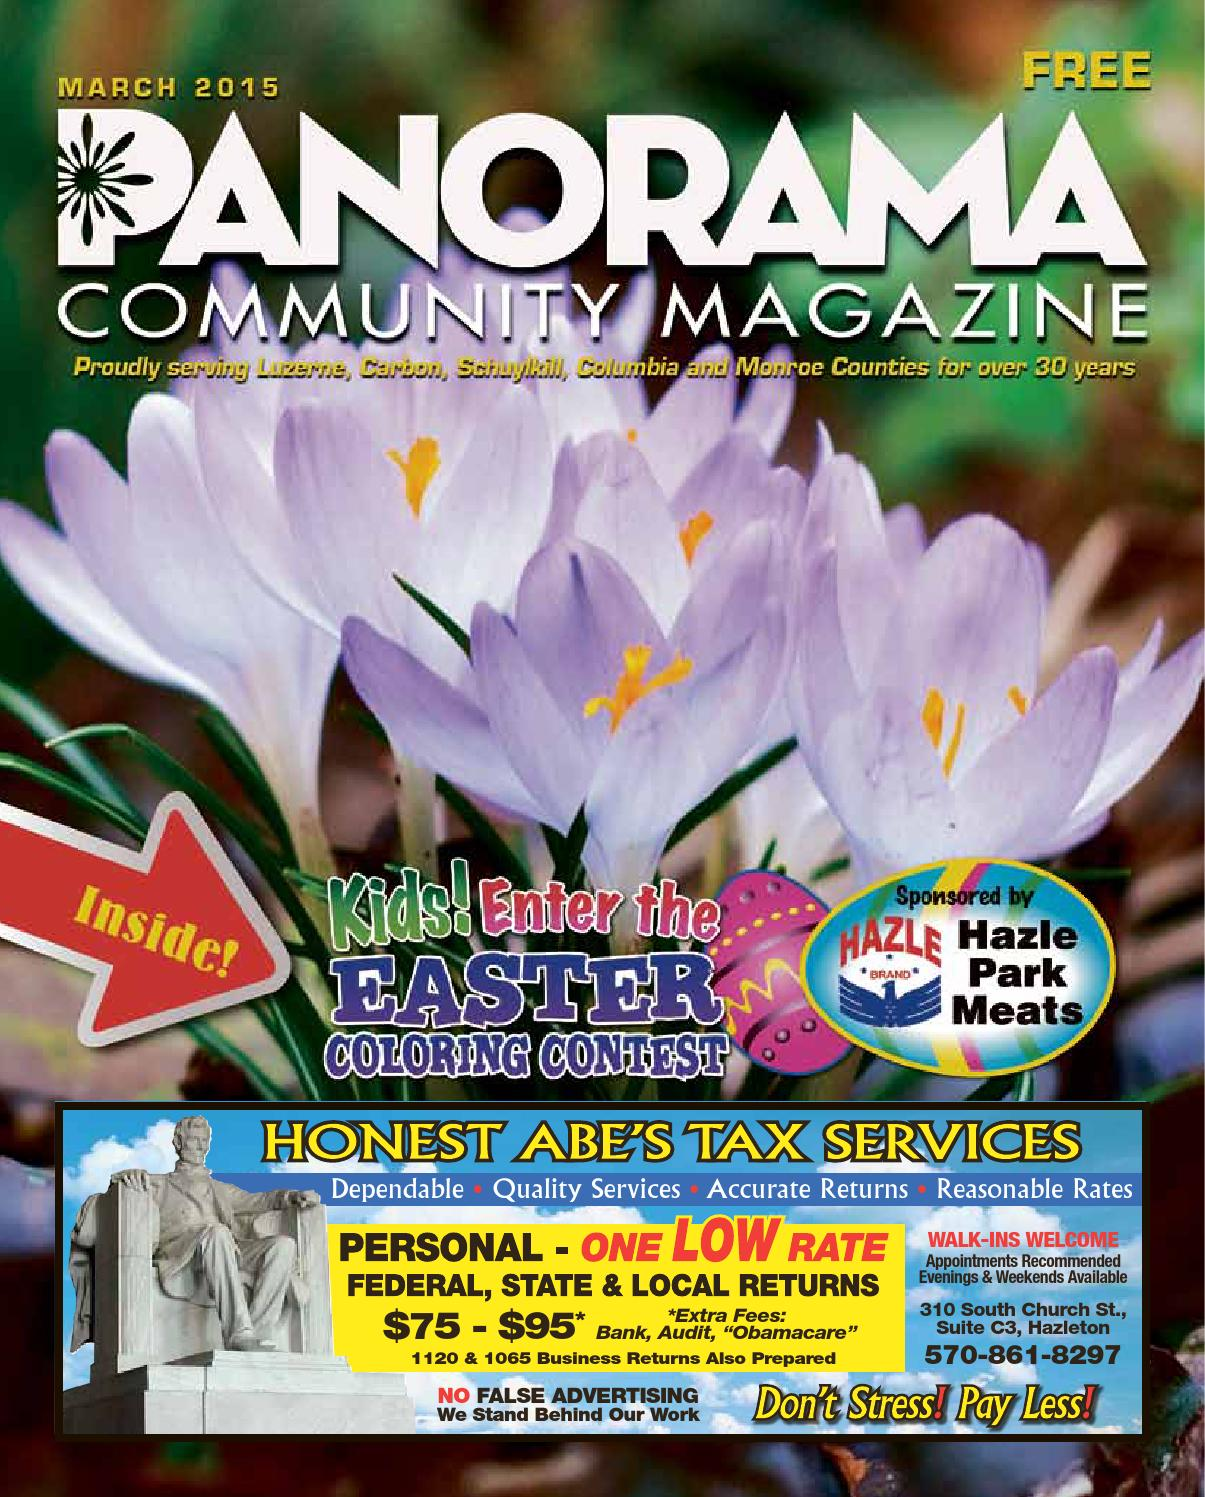 Kitchen gallery design center north broad street west hazleton pa - Panorama Community Magazine March 2015 By Panorama Community Magazine Issuu